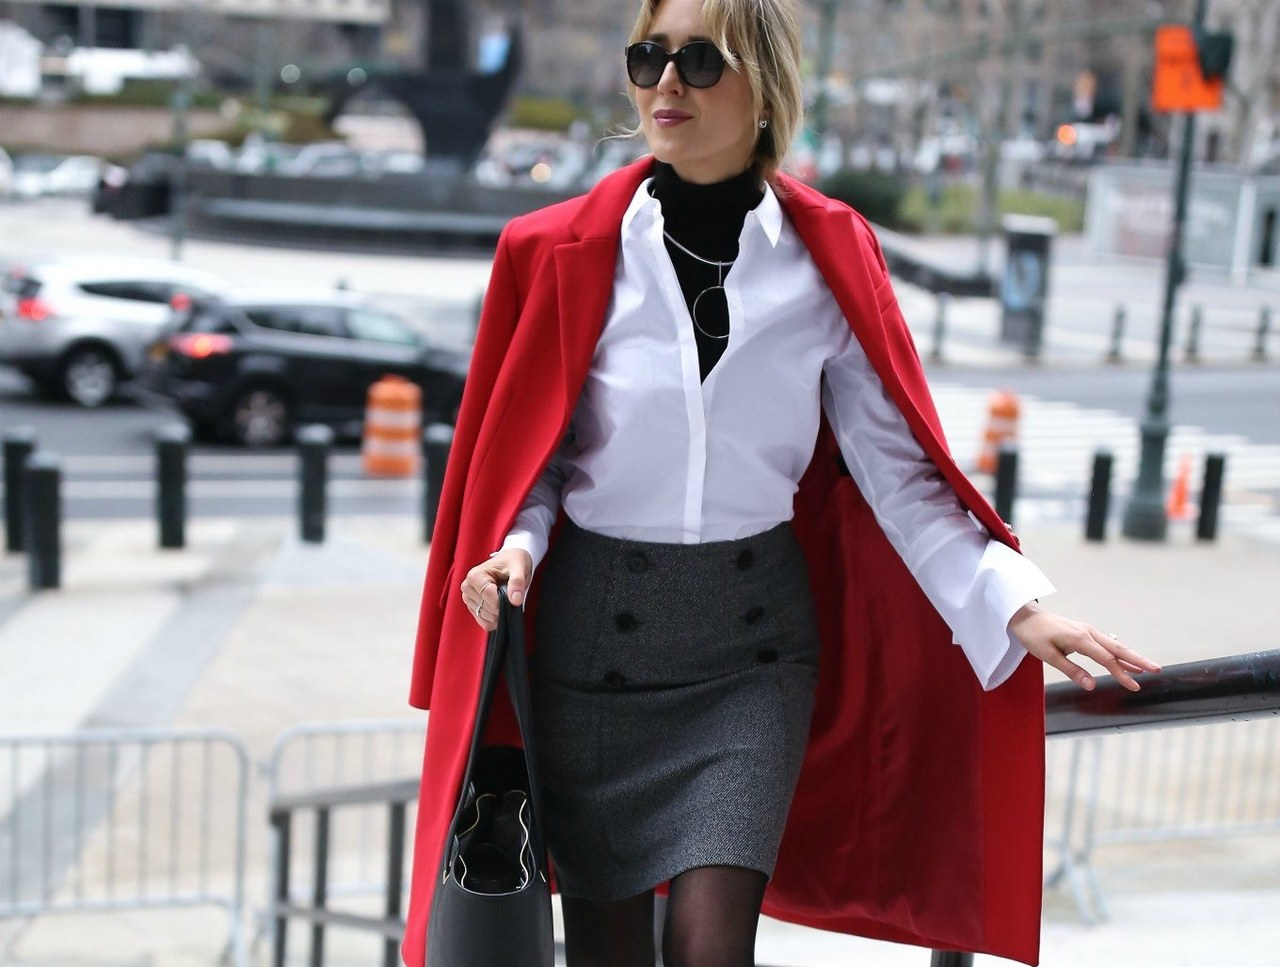 Style Request: 5 Ways To Wear Red With Your Outfit